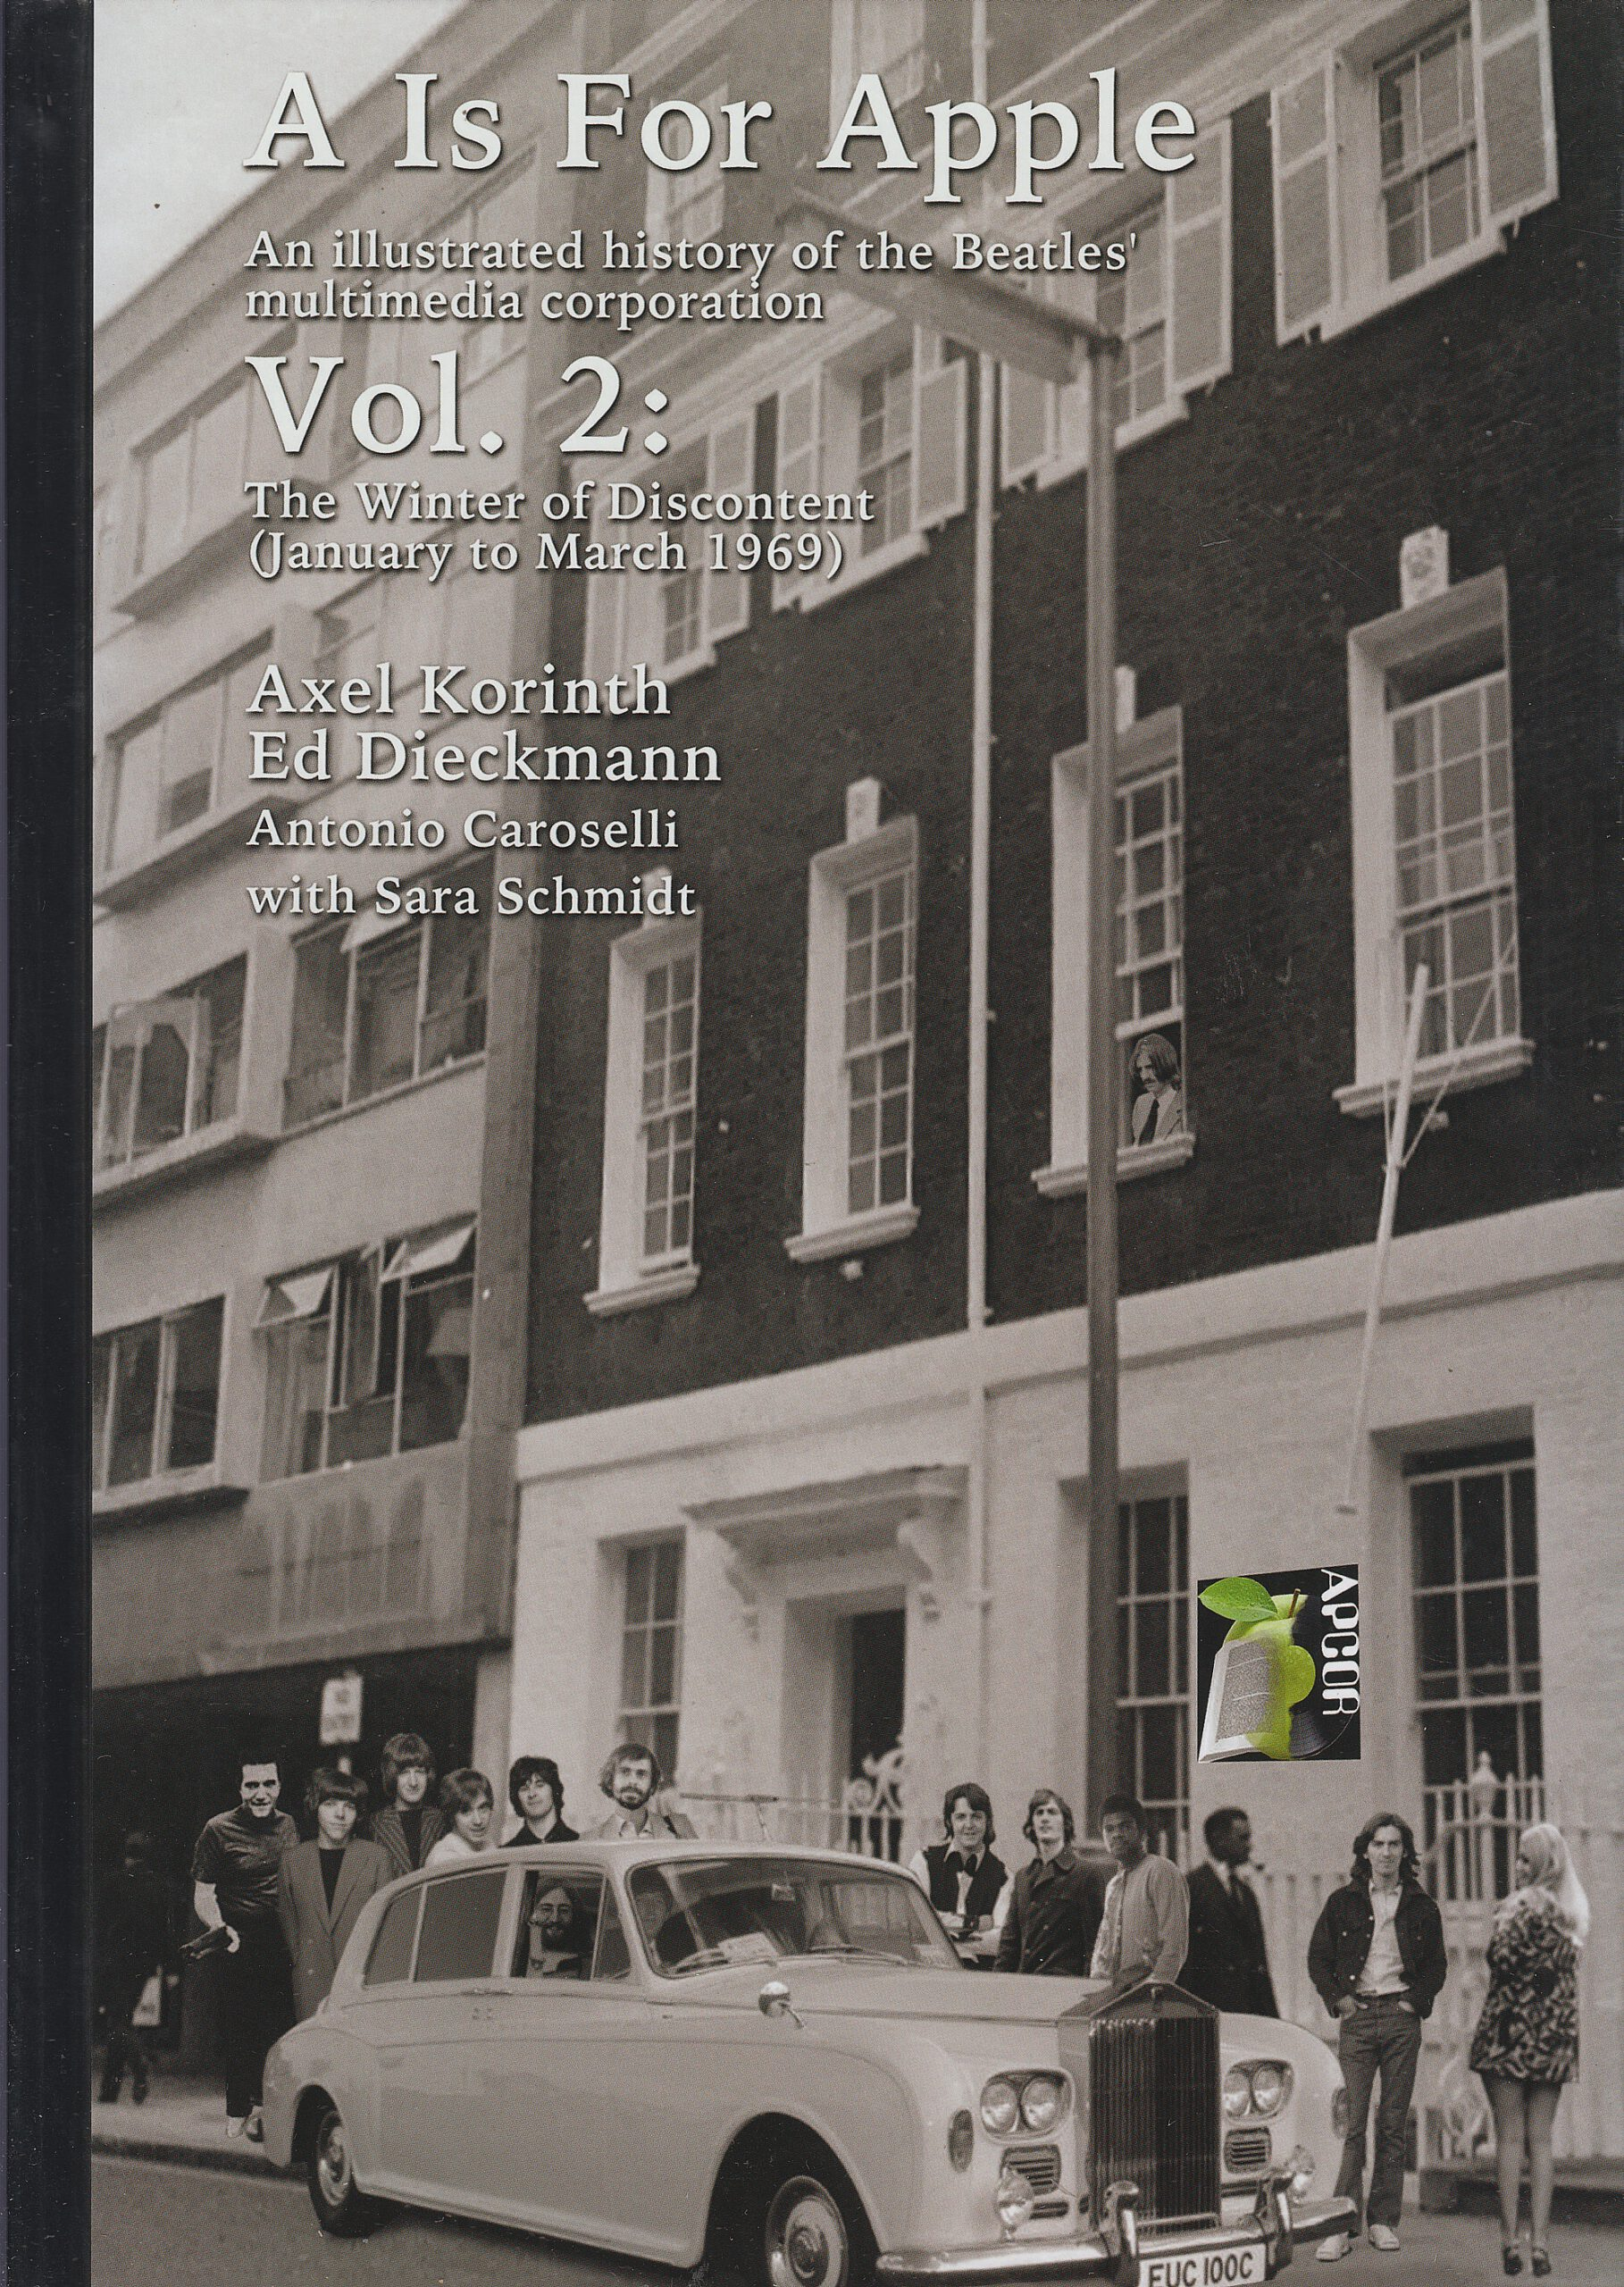 Book A is for Apple Vol. 2